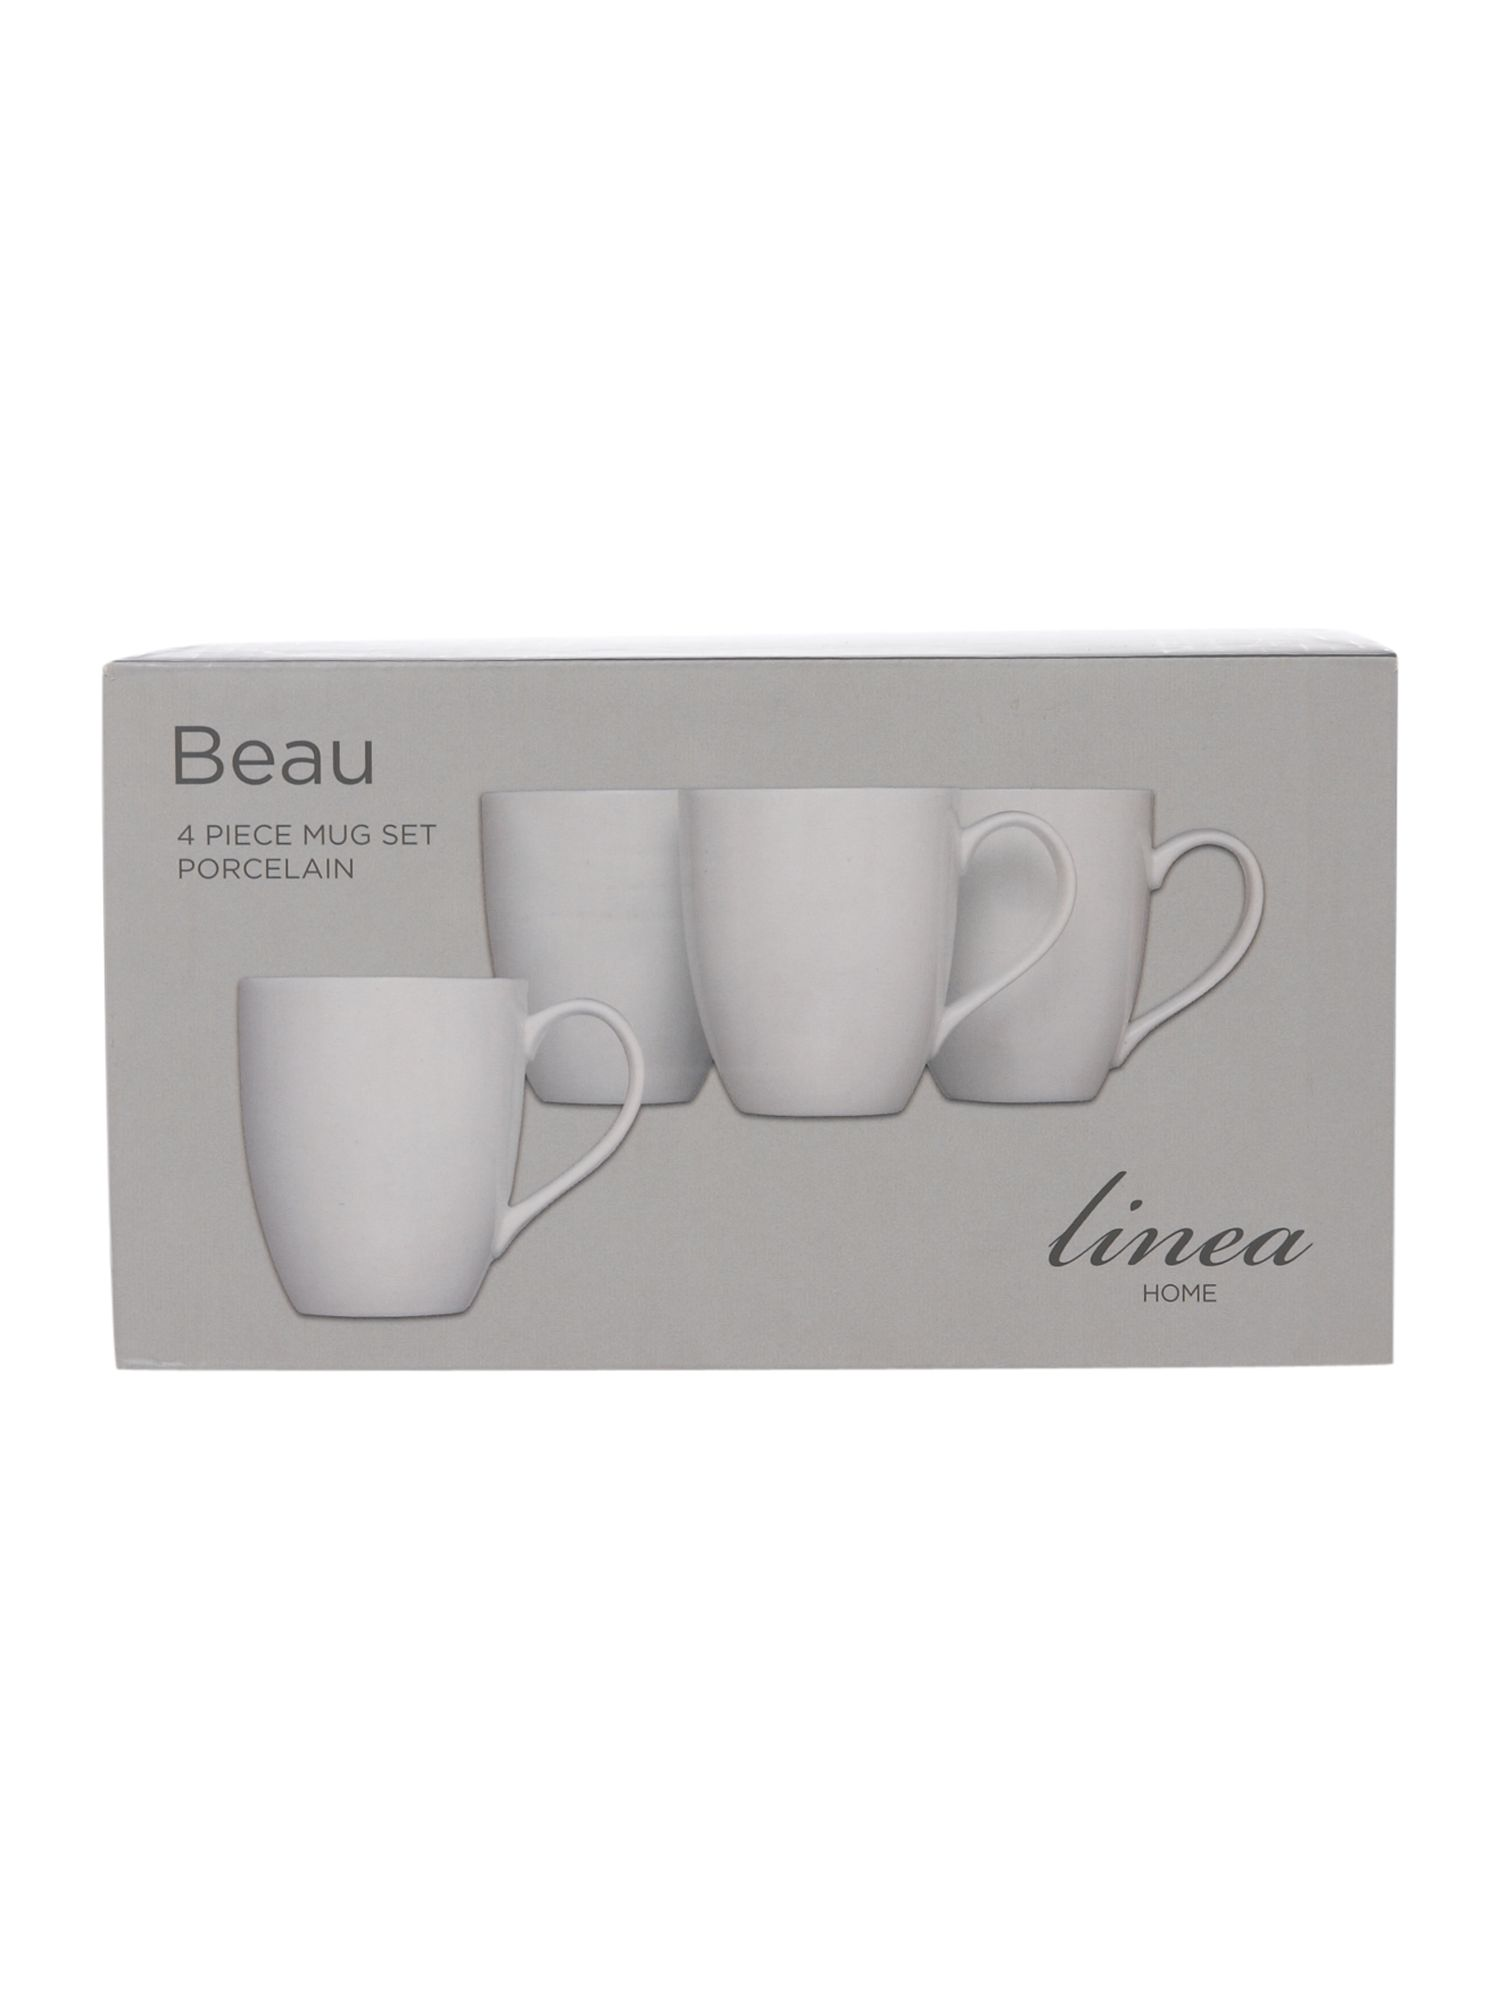 Beau 4 piece mug set